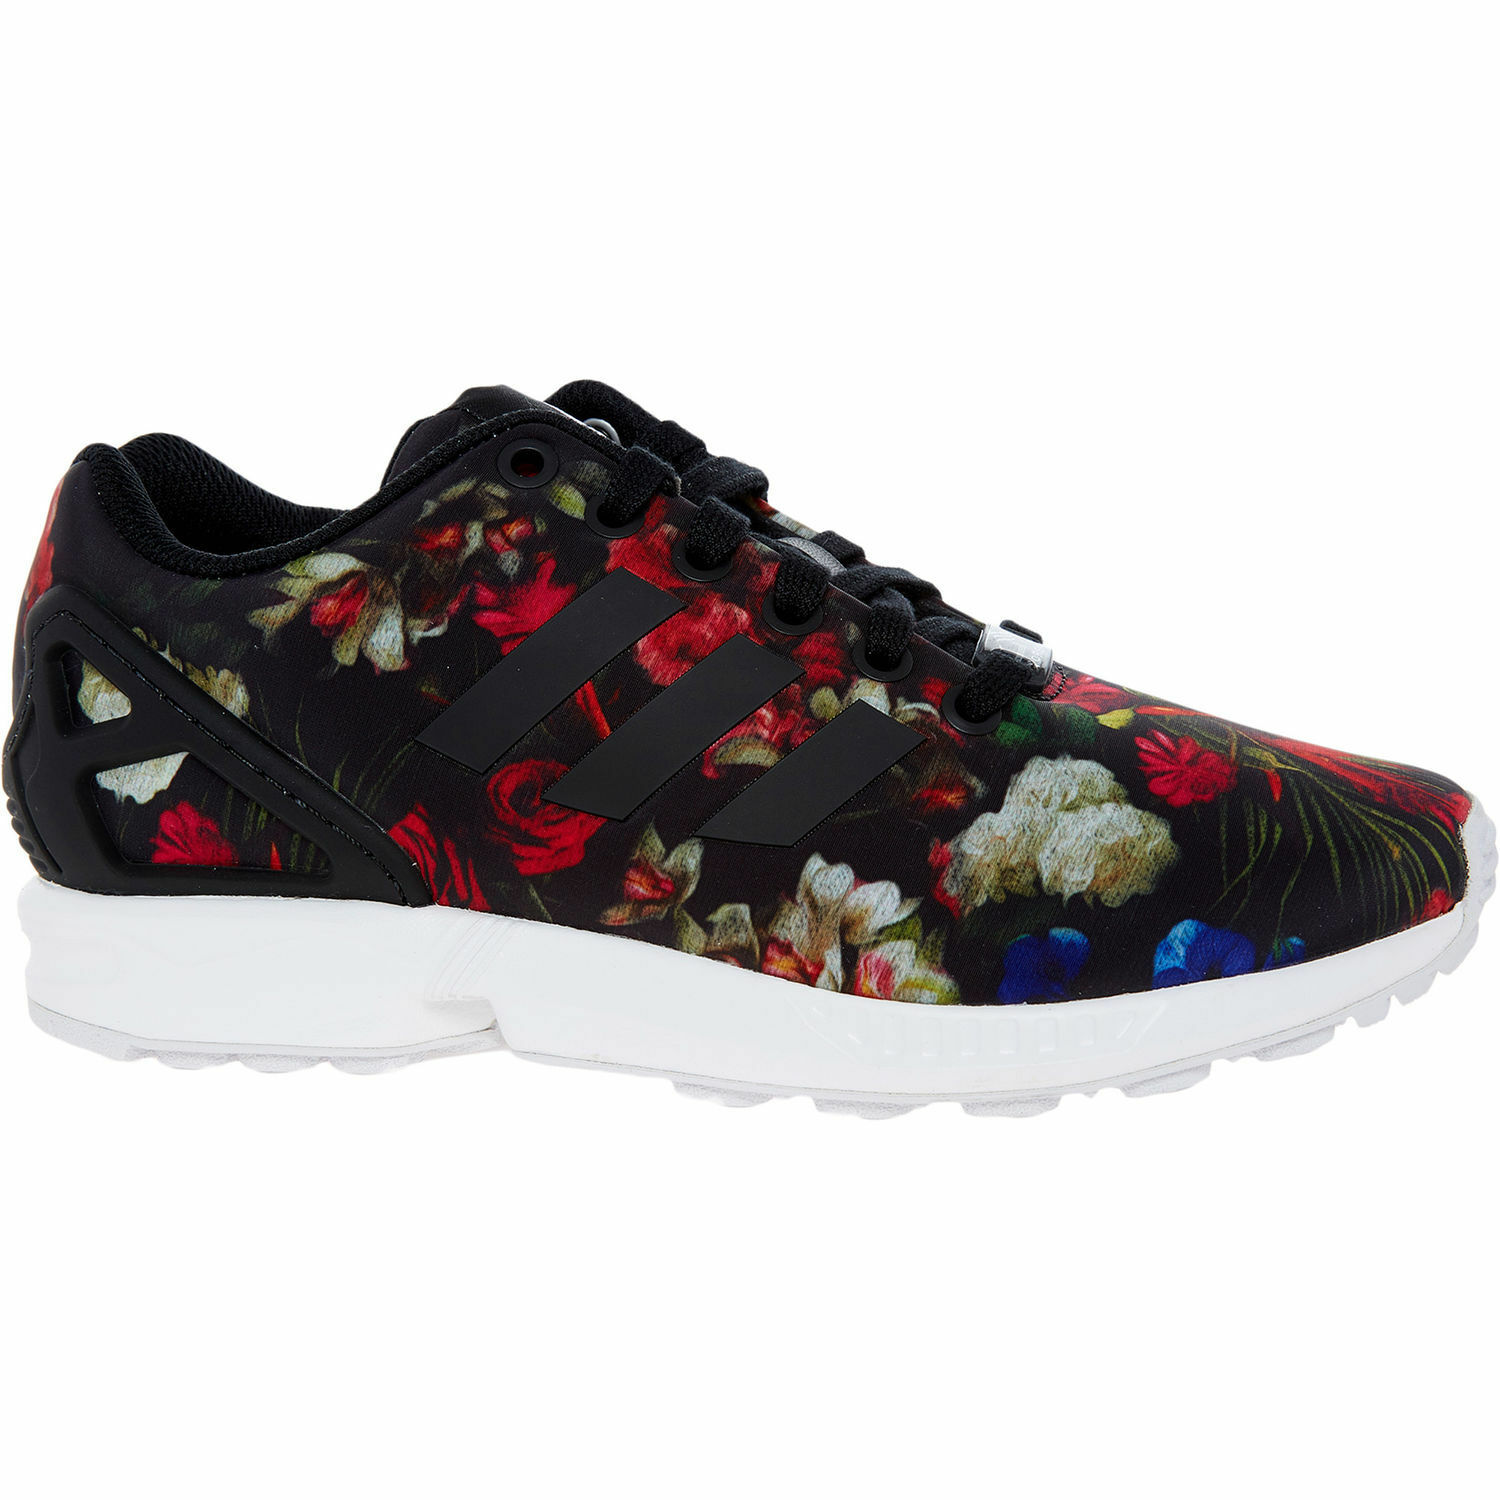 ADIDAS ORIGINALS ZX FLUX femmes  Floral Trainers Sneakers Tailles4-6.5